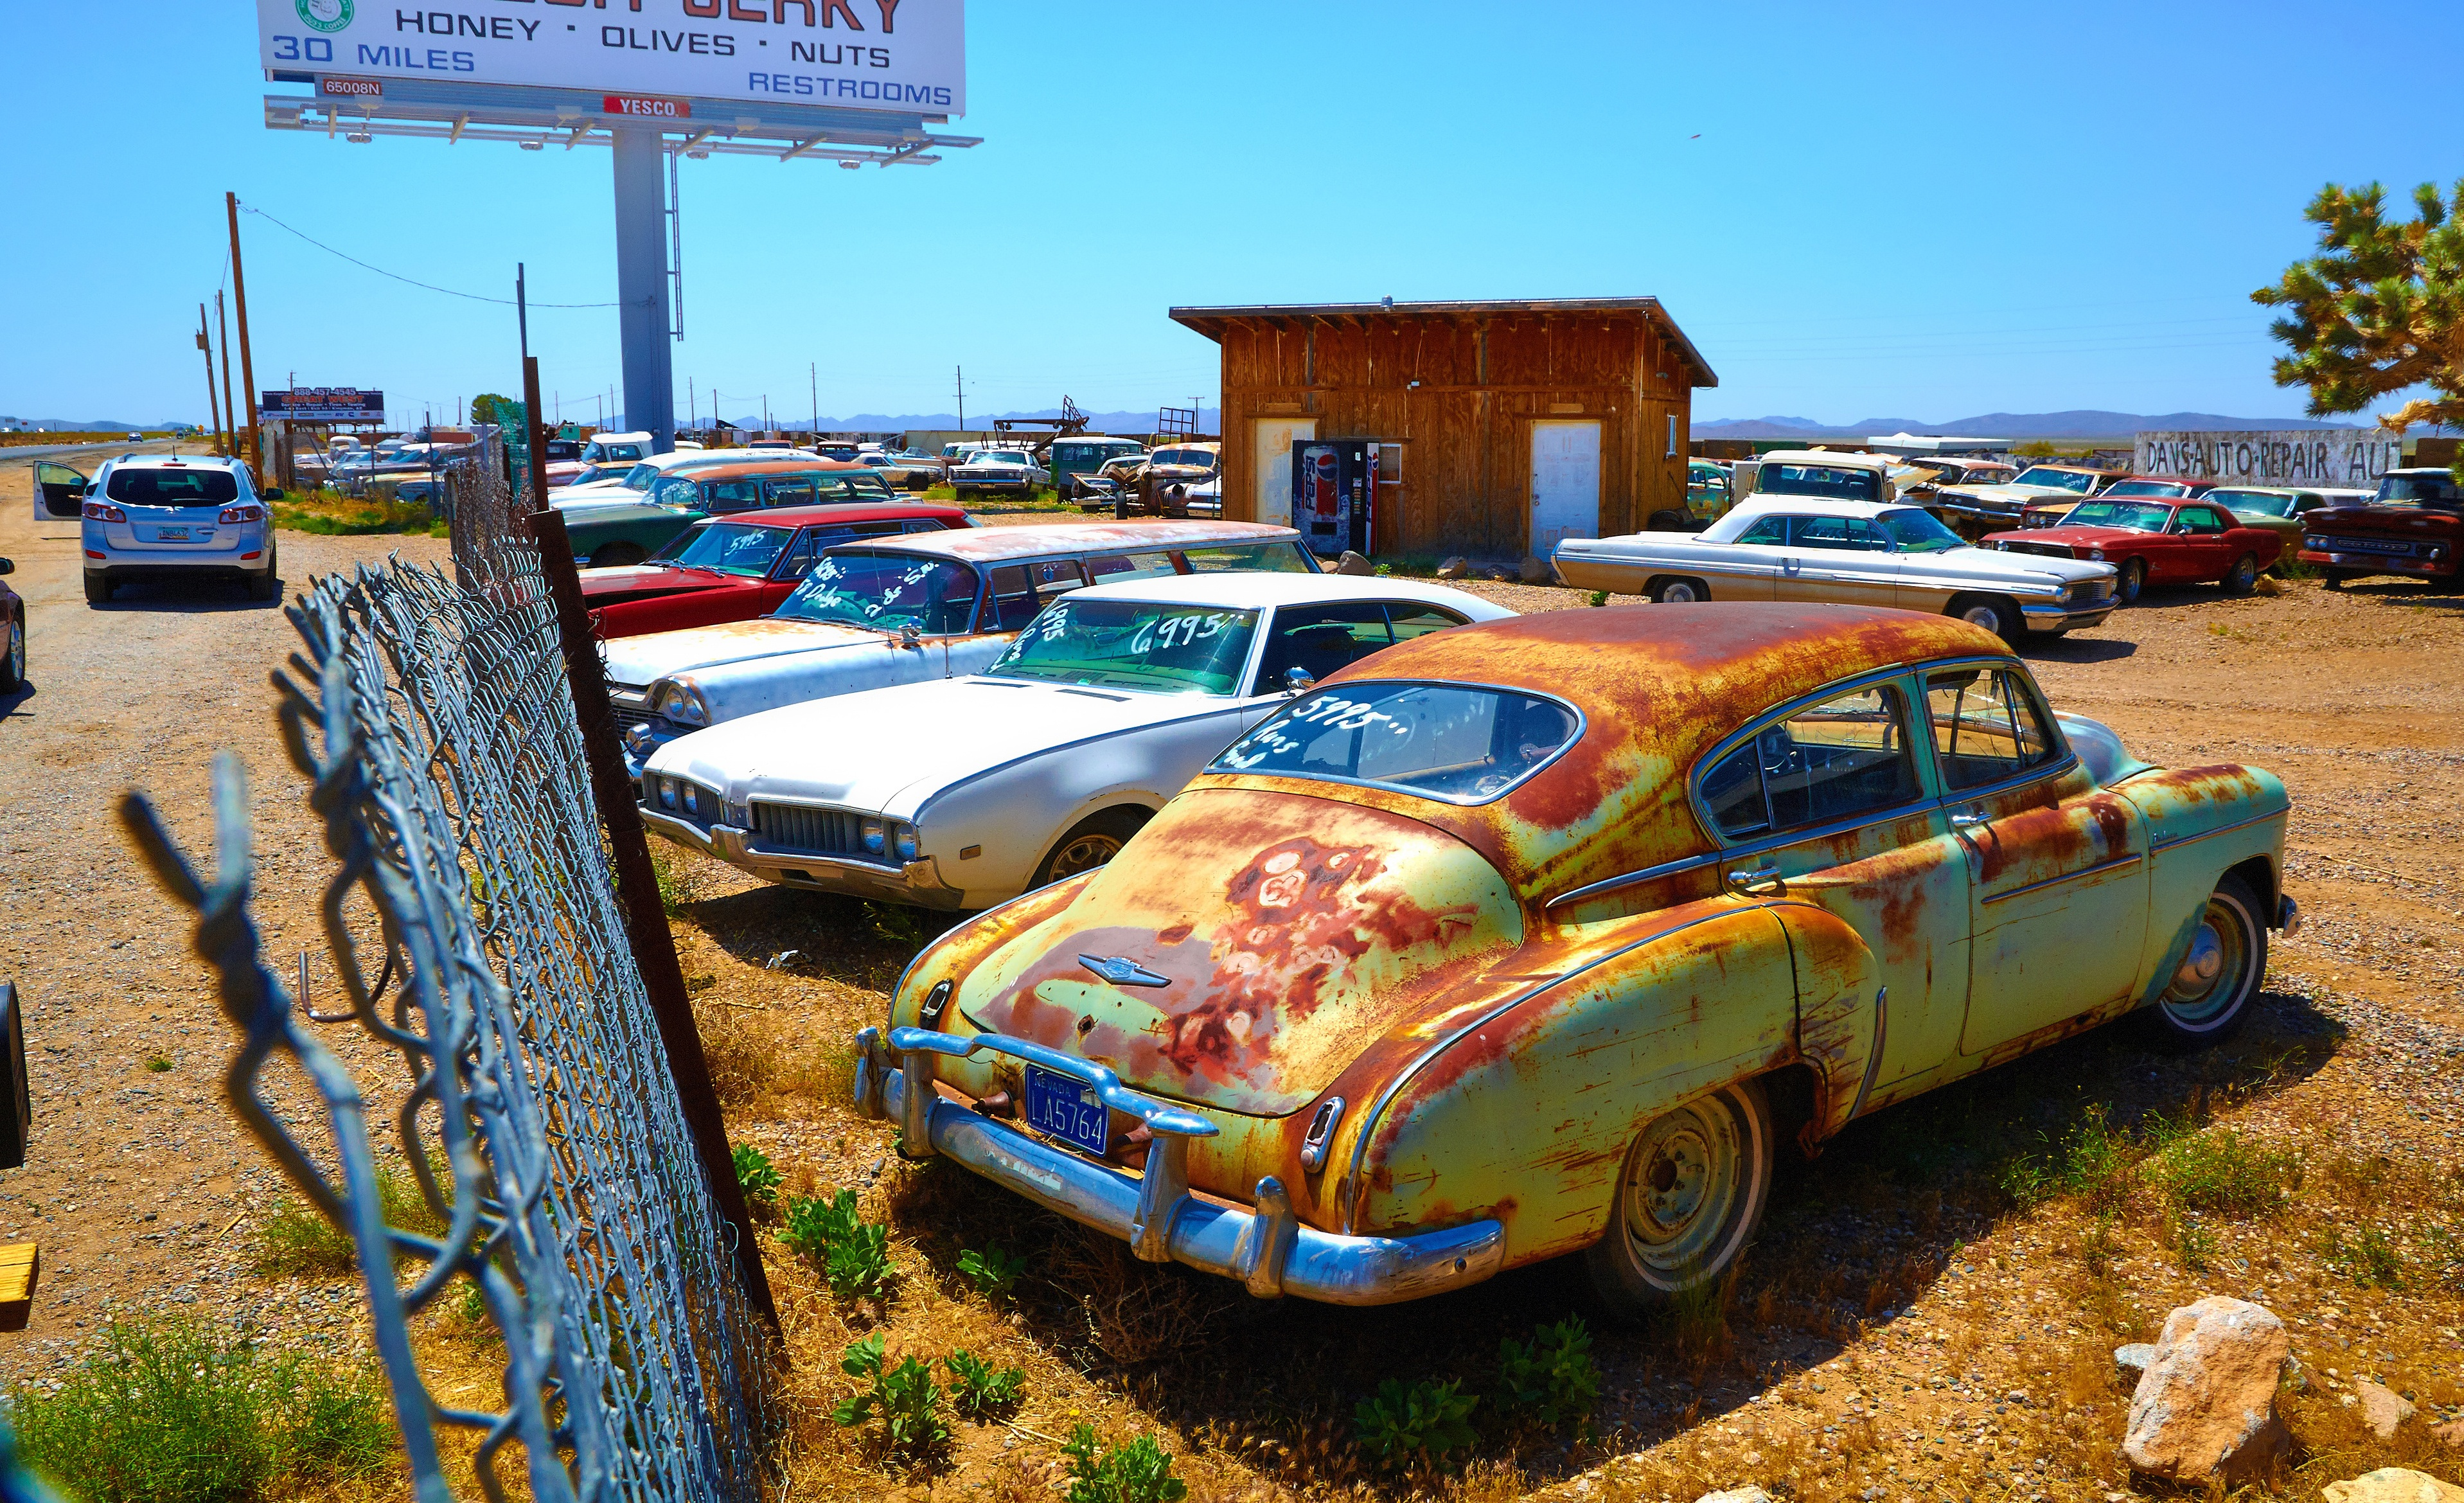 Used Car Salvage Title